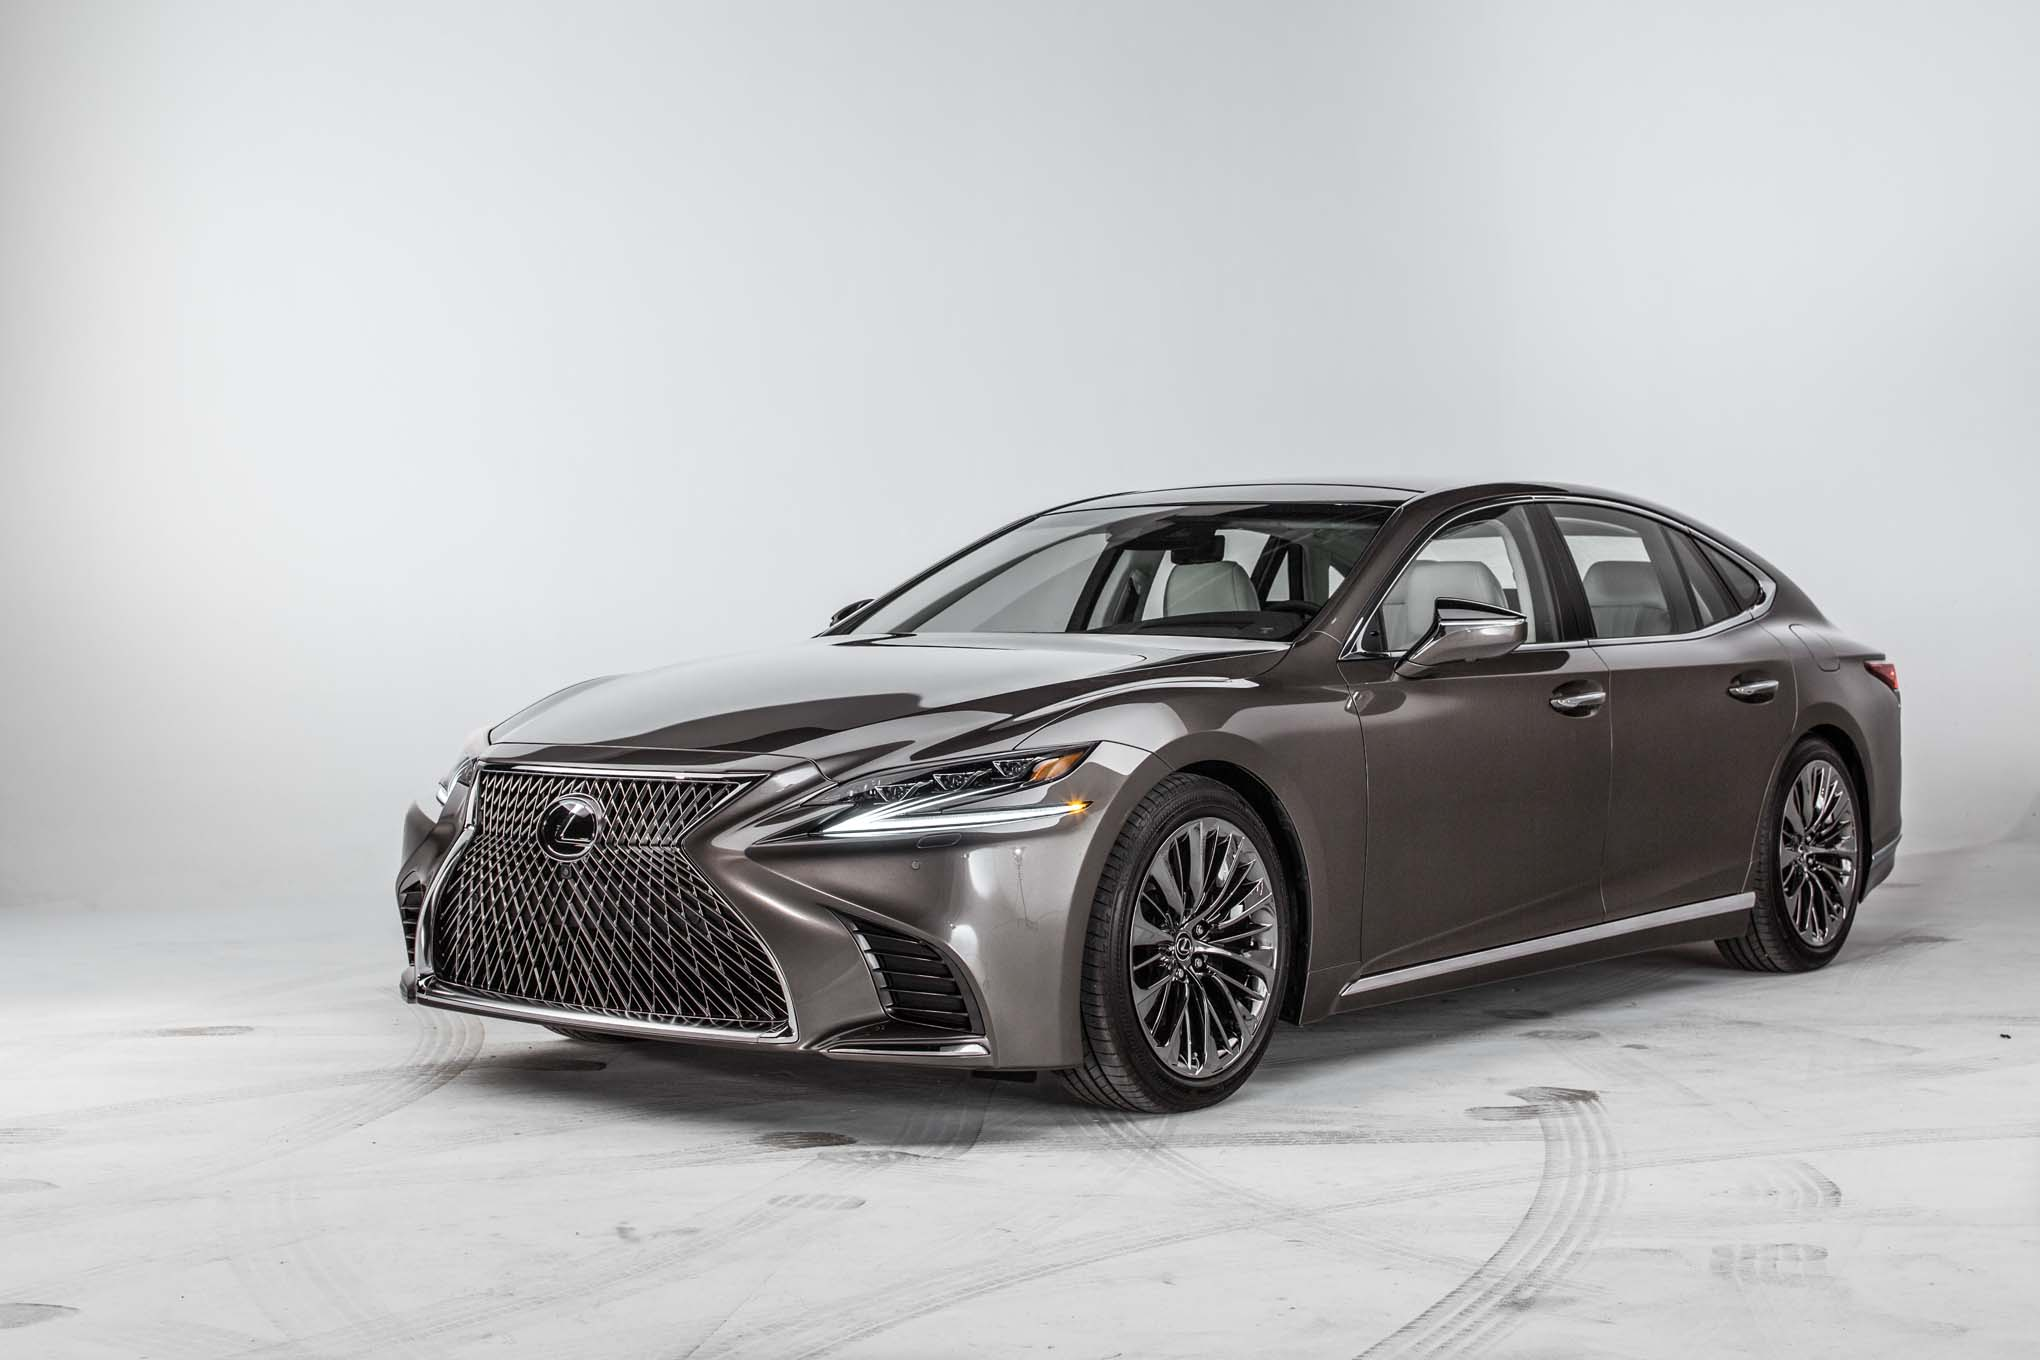 2018 lexus ls 460. Beautiful 2018 Show More With 2018 Lexus Ls 460